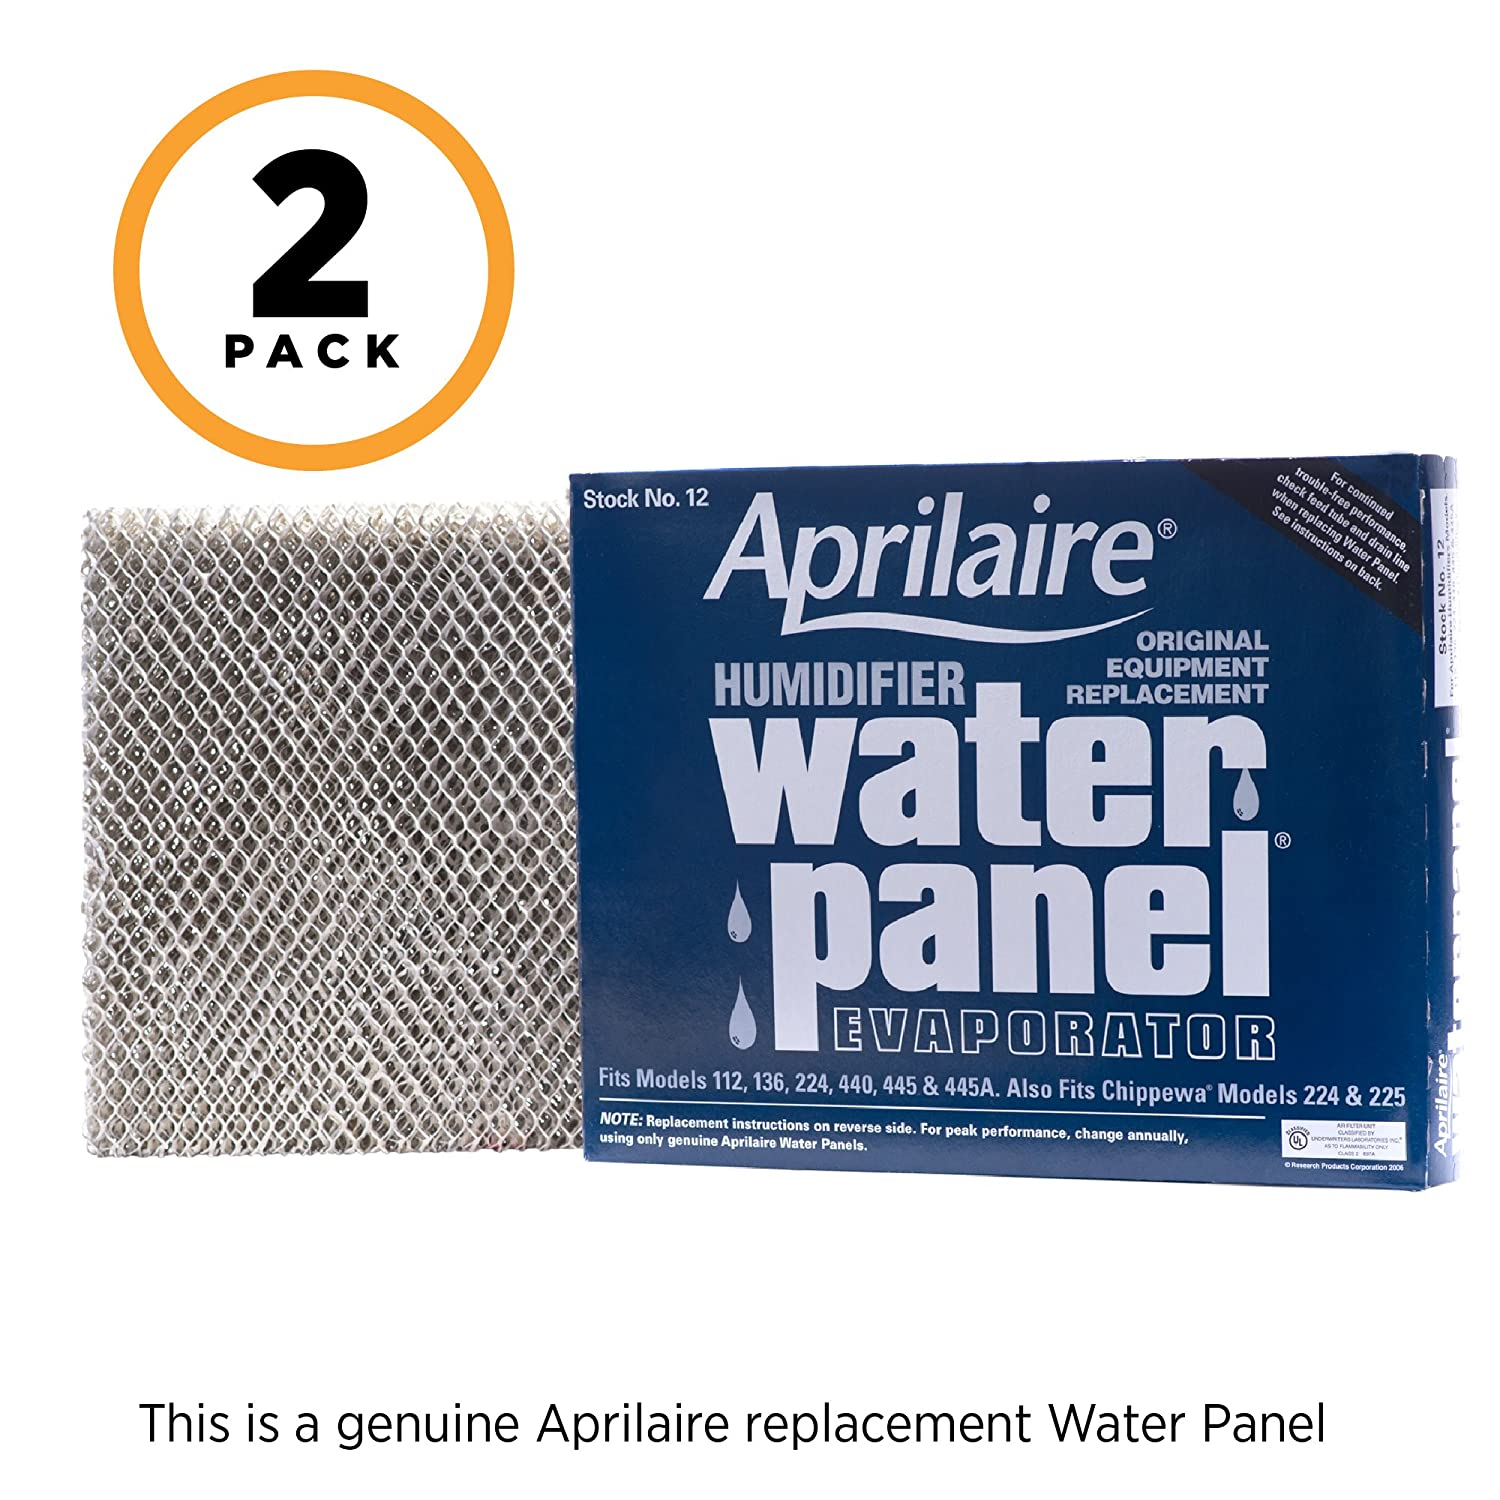 Aprilaire 12 Replacement Water Panel for Aprilaire Whole House Humidifier Models 112, 224, 225, 440, 445, 448 (Pack of 2)